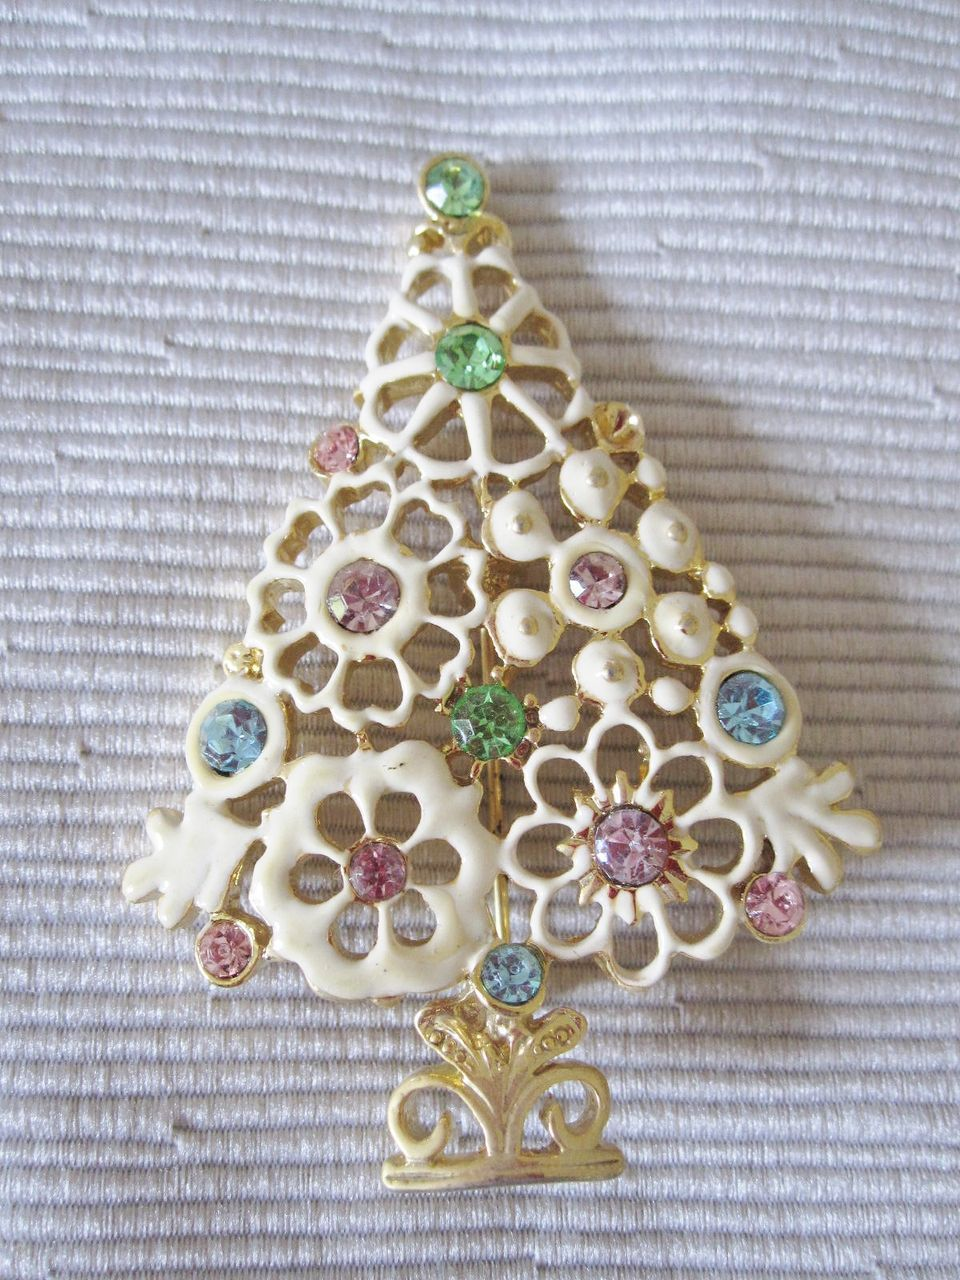 Christmas Tree Flower Power : Love this unique flower power christmas tree vintage